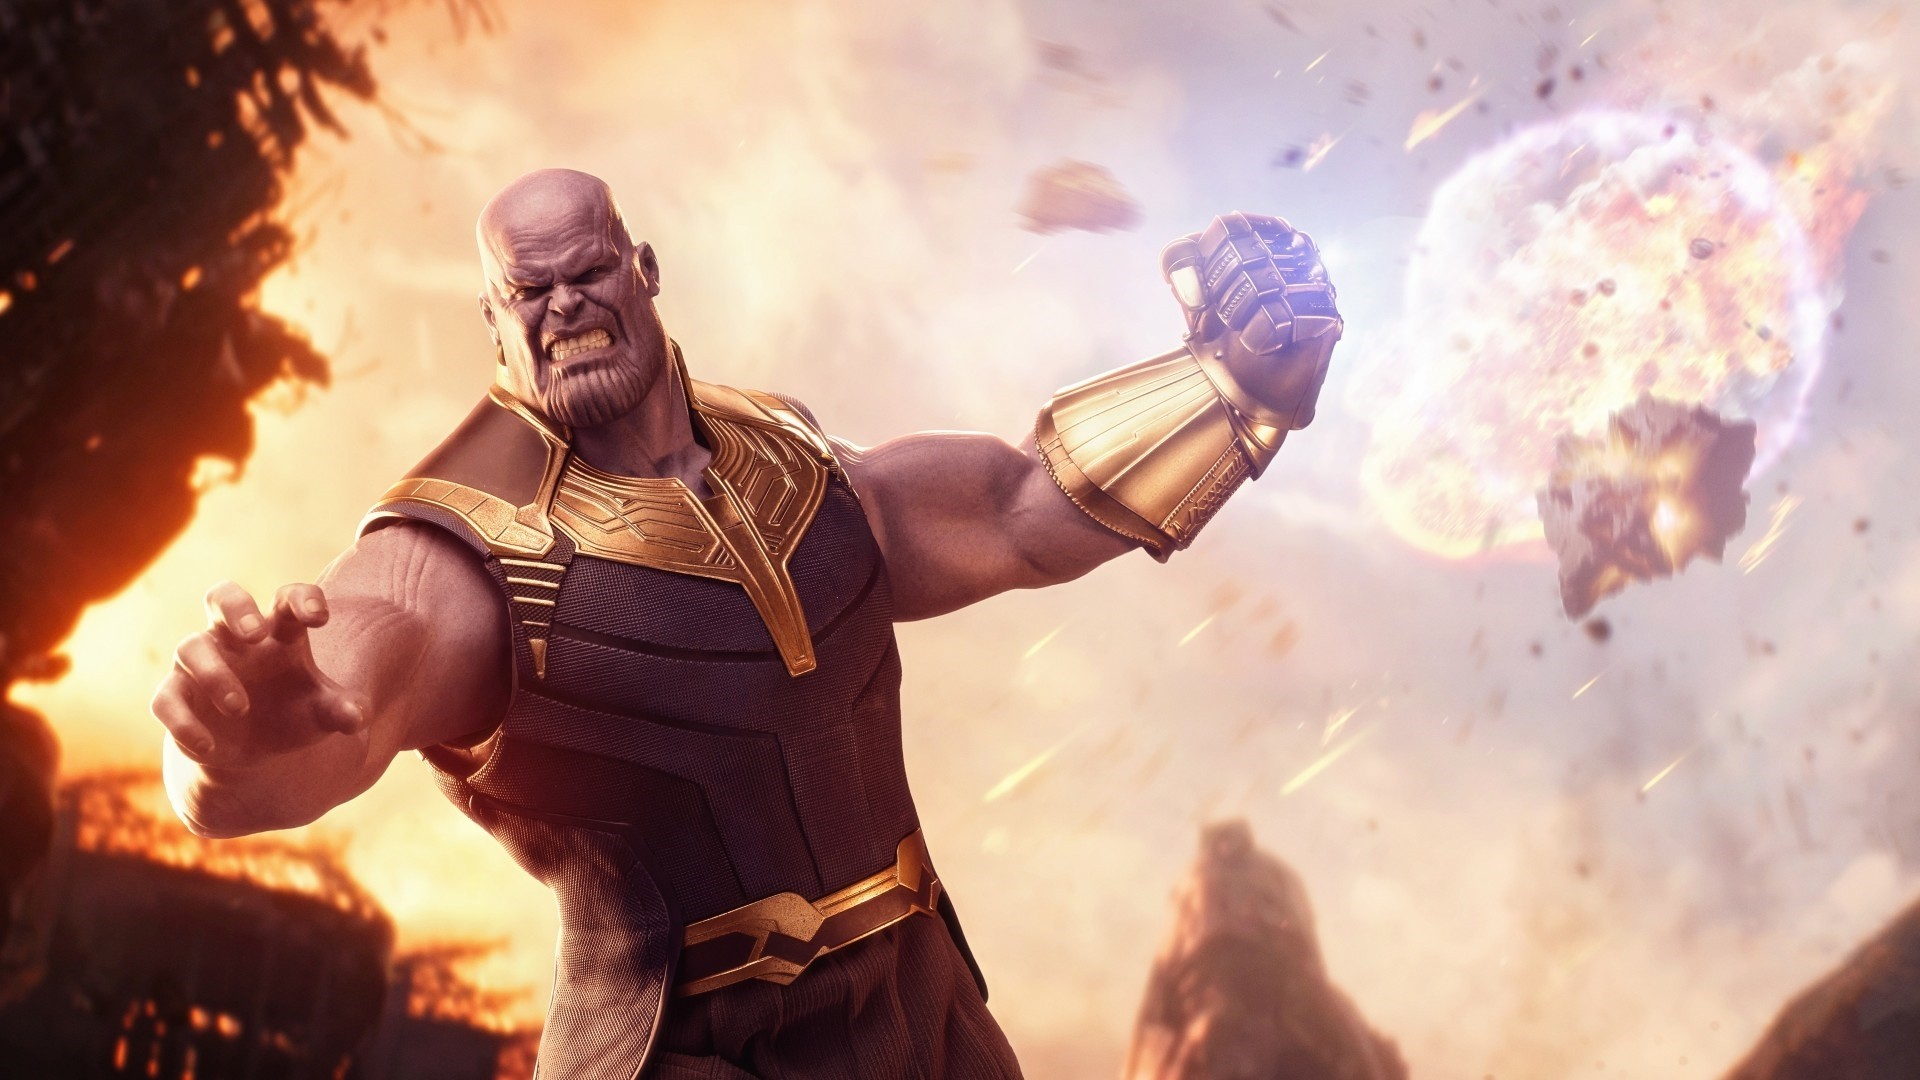 Thanos PC Wallpaper HD